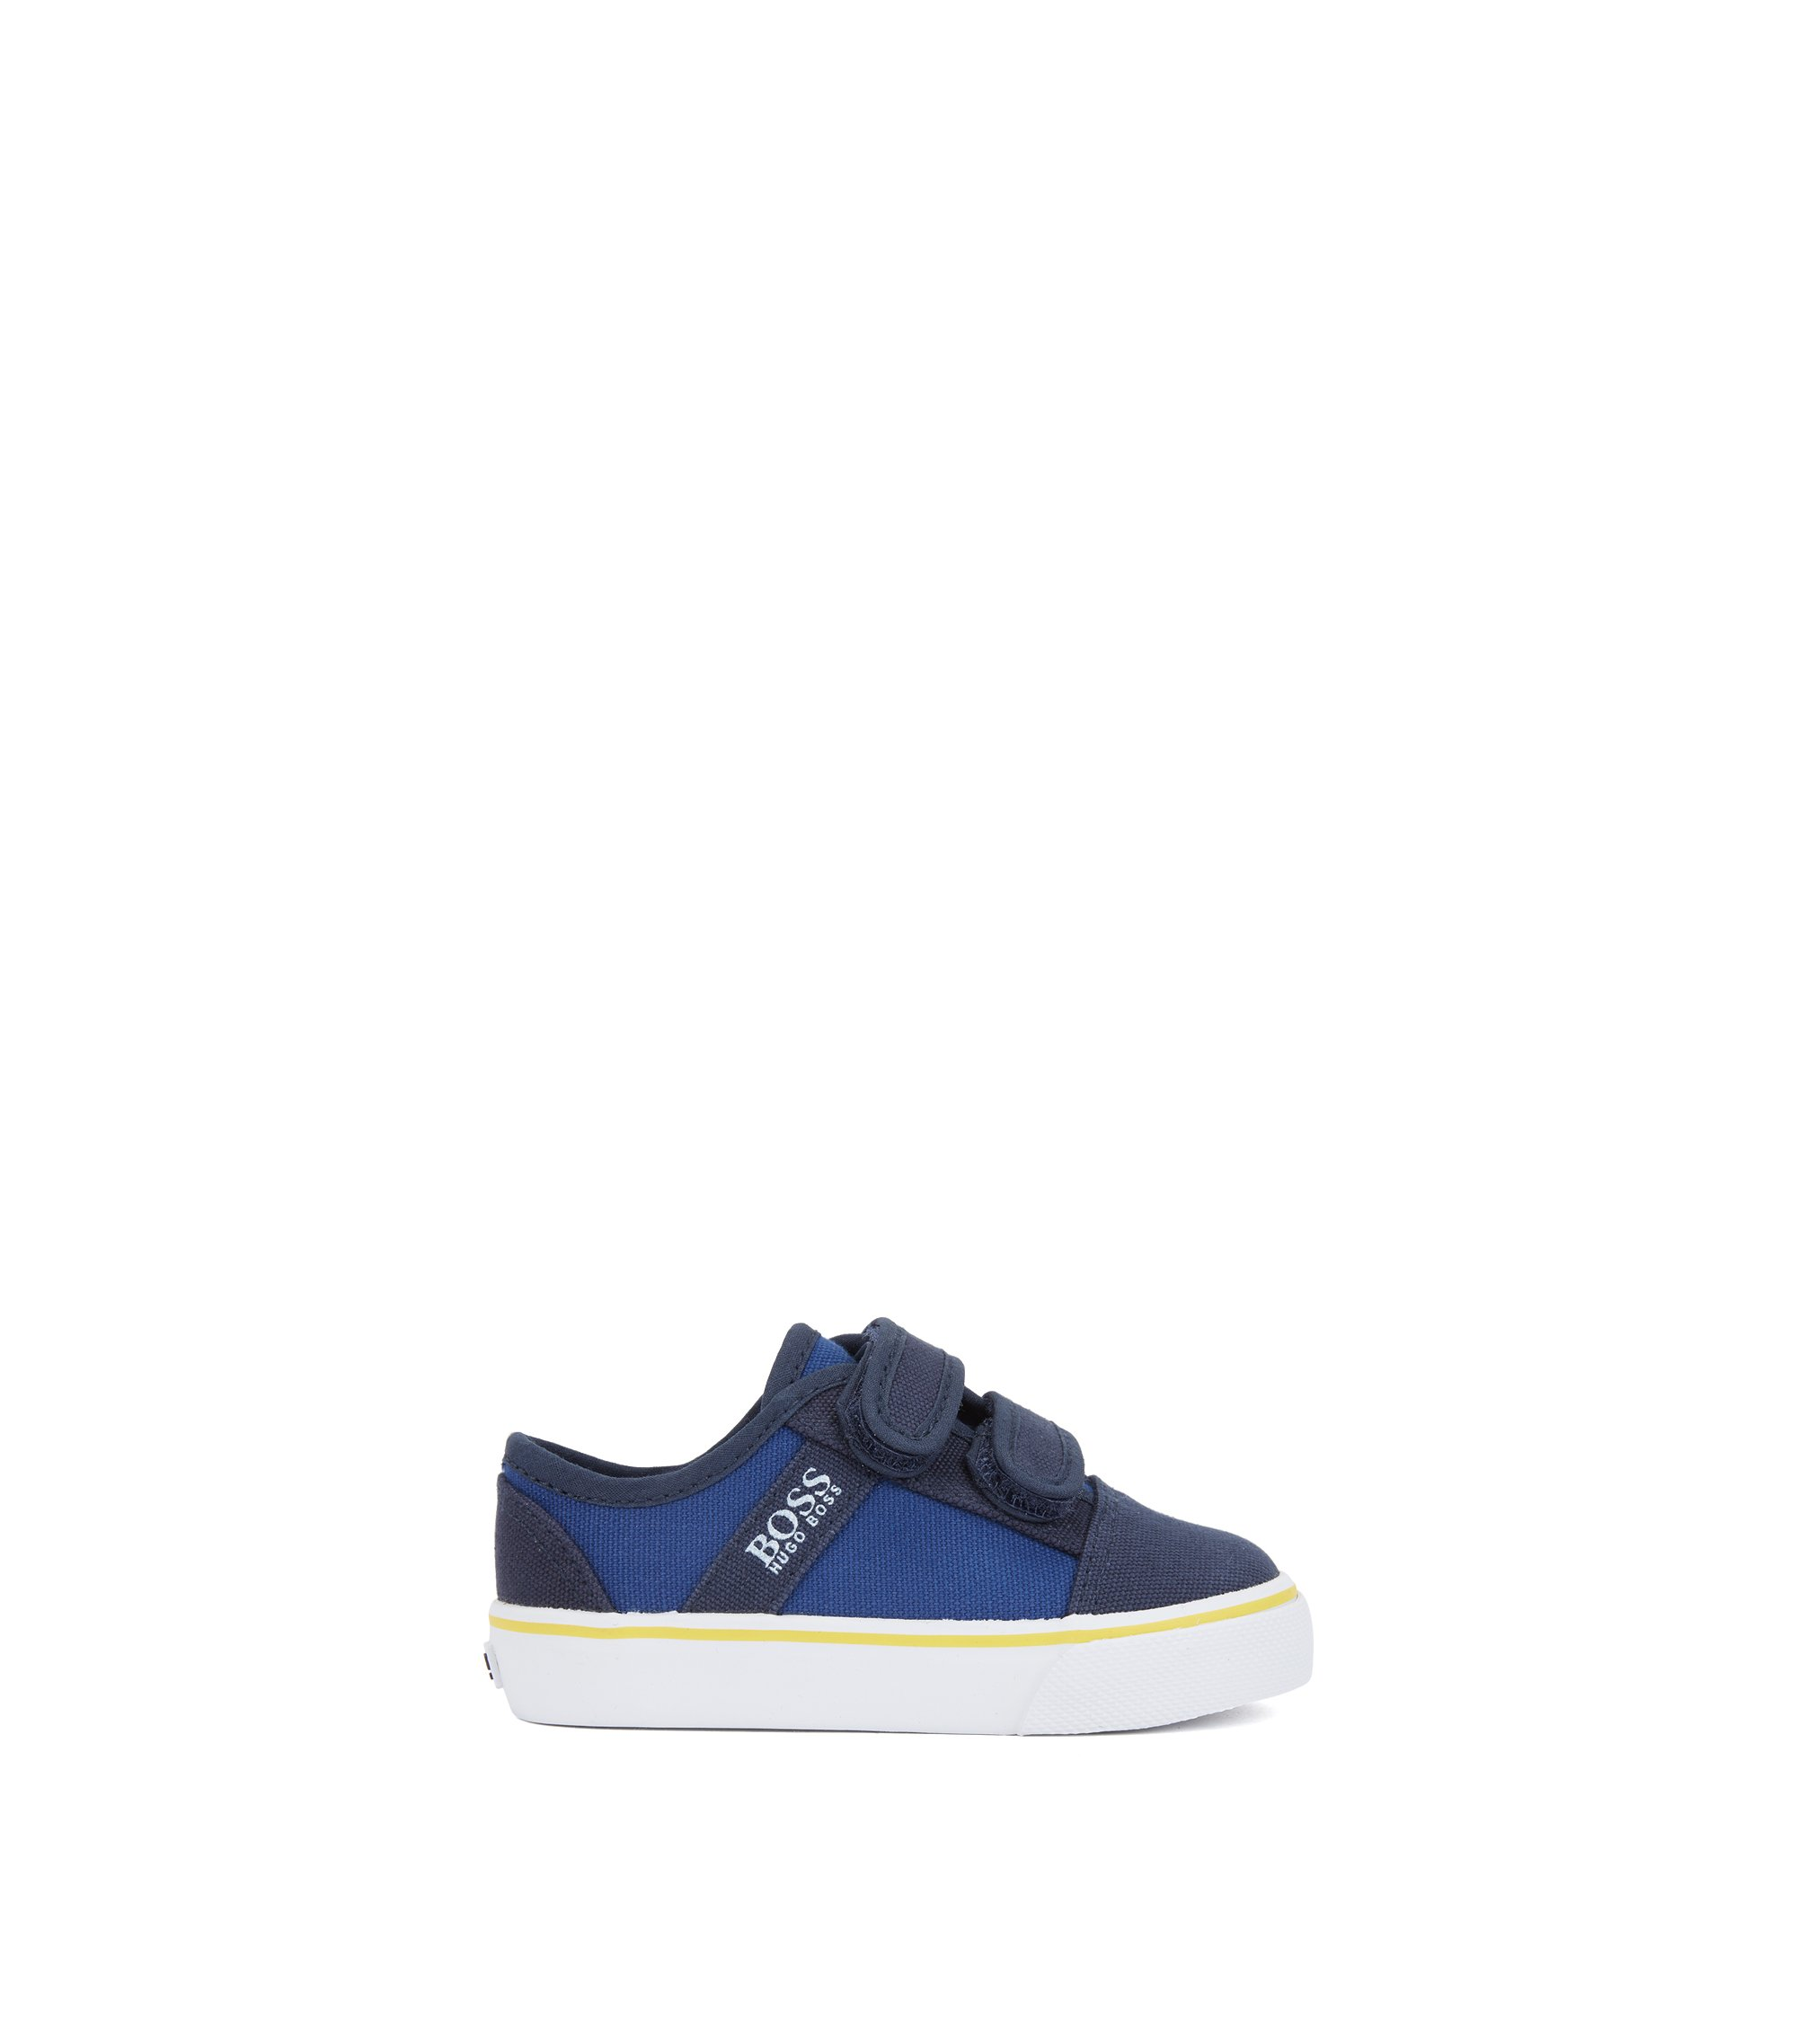 Kids' canvas trainers with touch-fastening straps, Blue